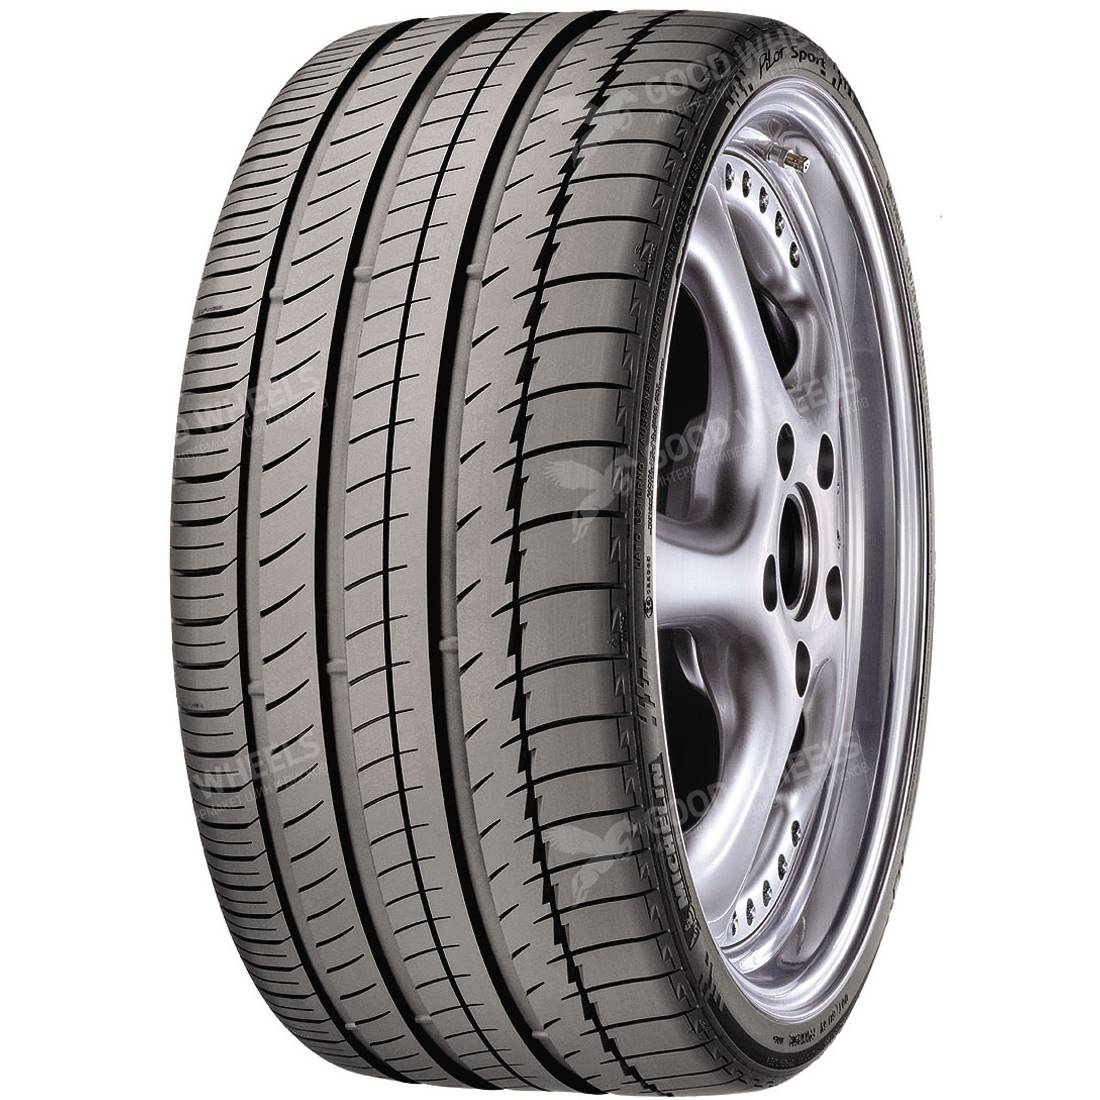 Michelin Pilot Sport 2 (PS2) 235/35 R19 87Y